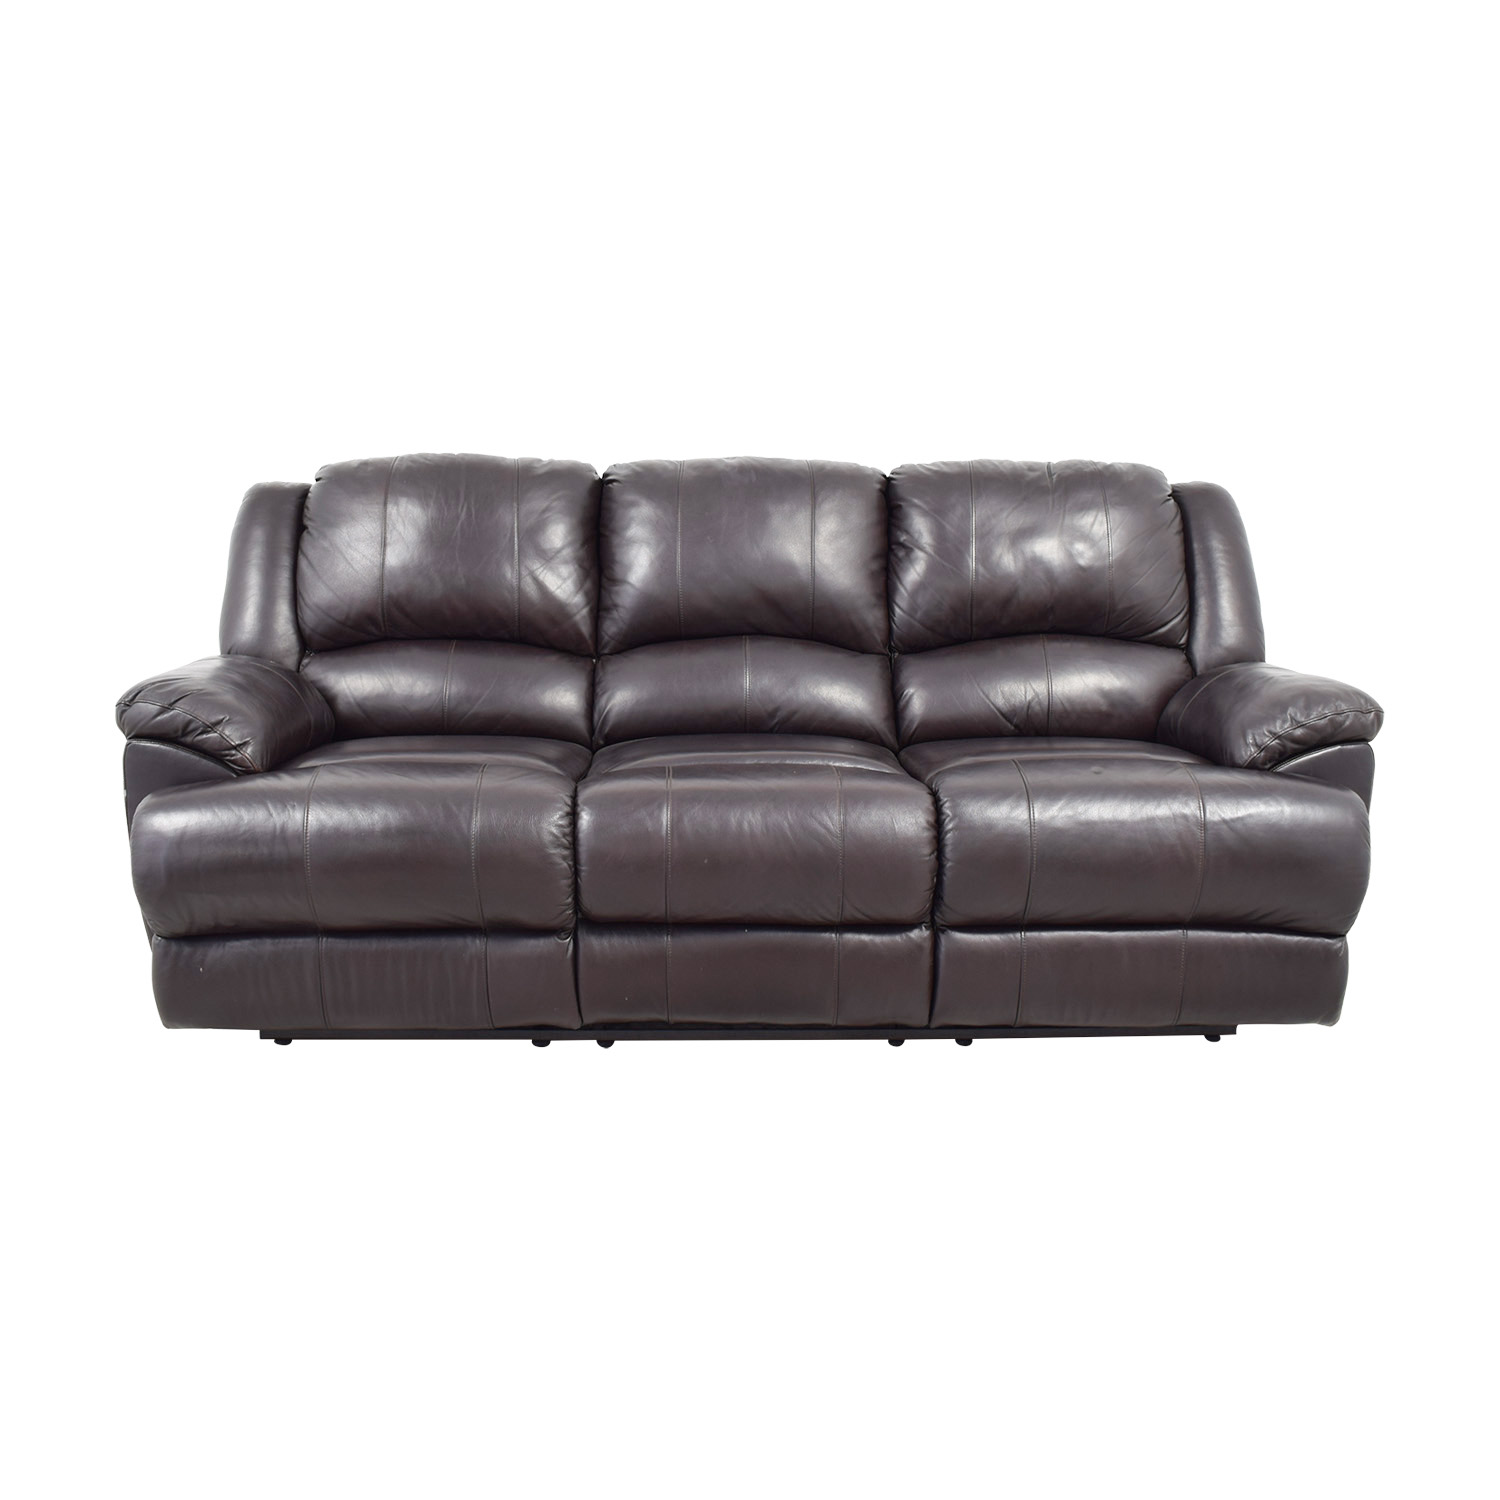 76% OFF - Ashley Furniture Ashley Furniture Black Leather Reclining Couch /  Sofas